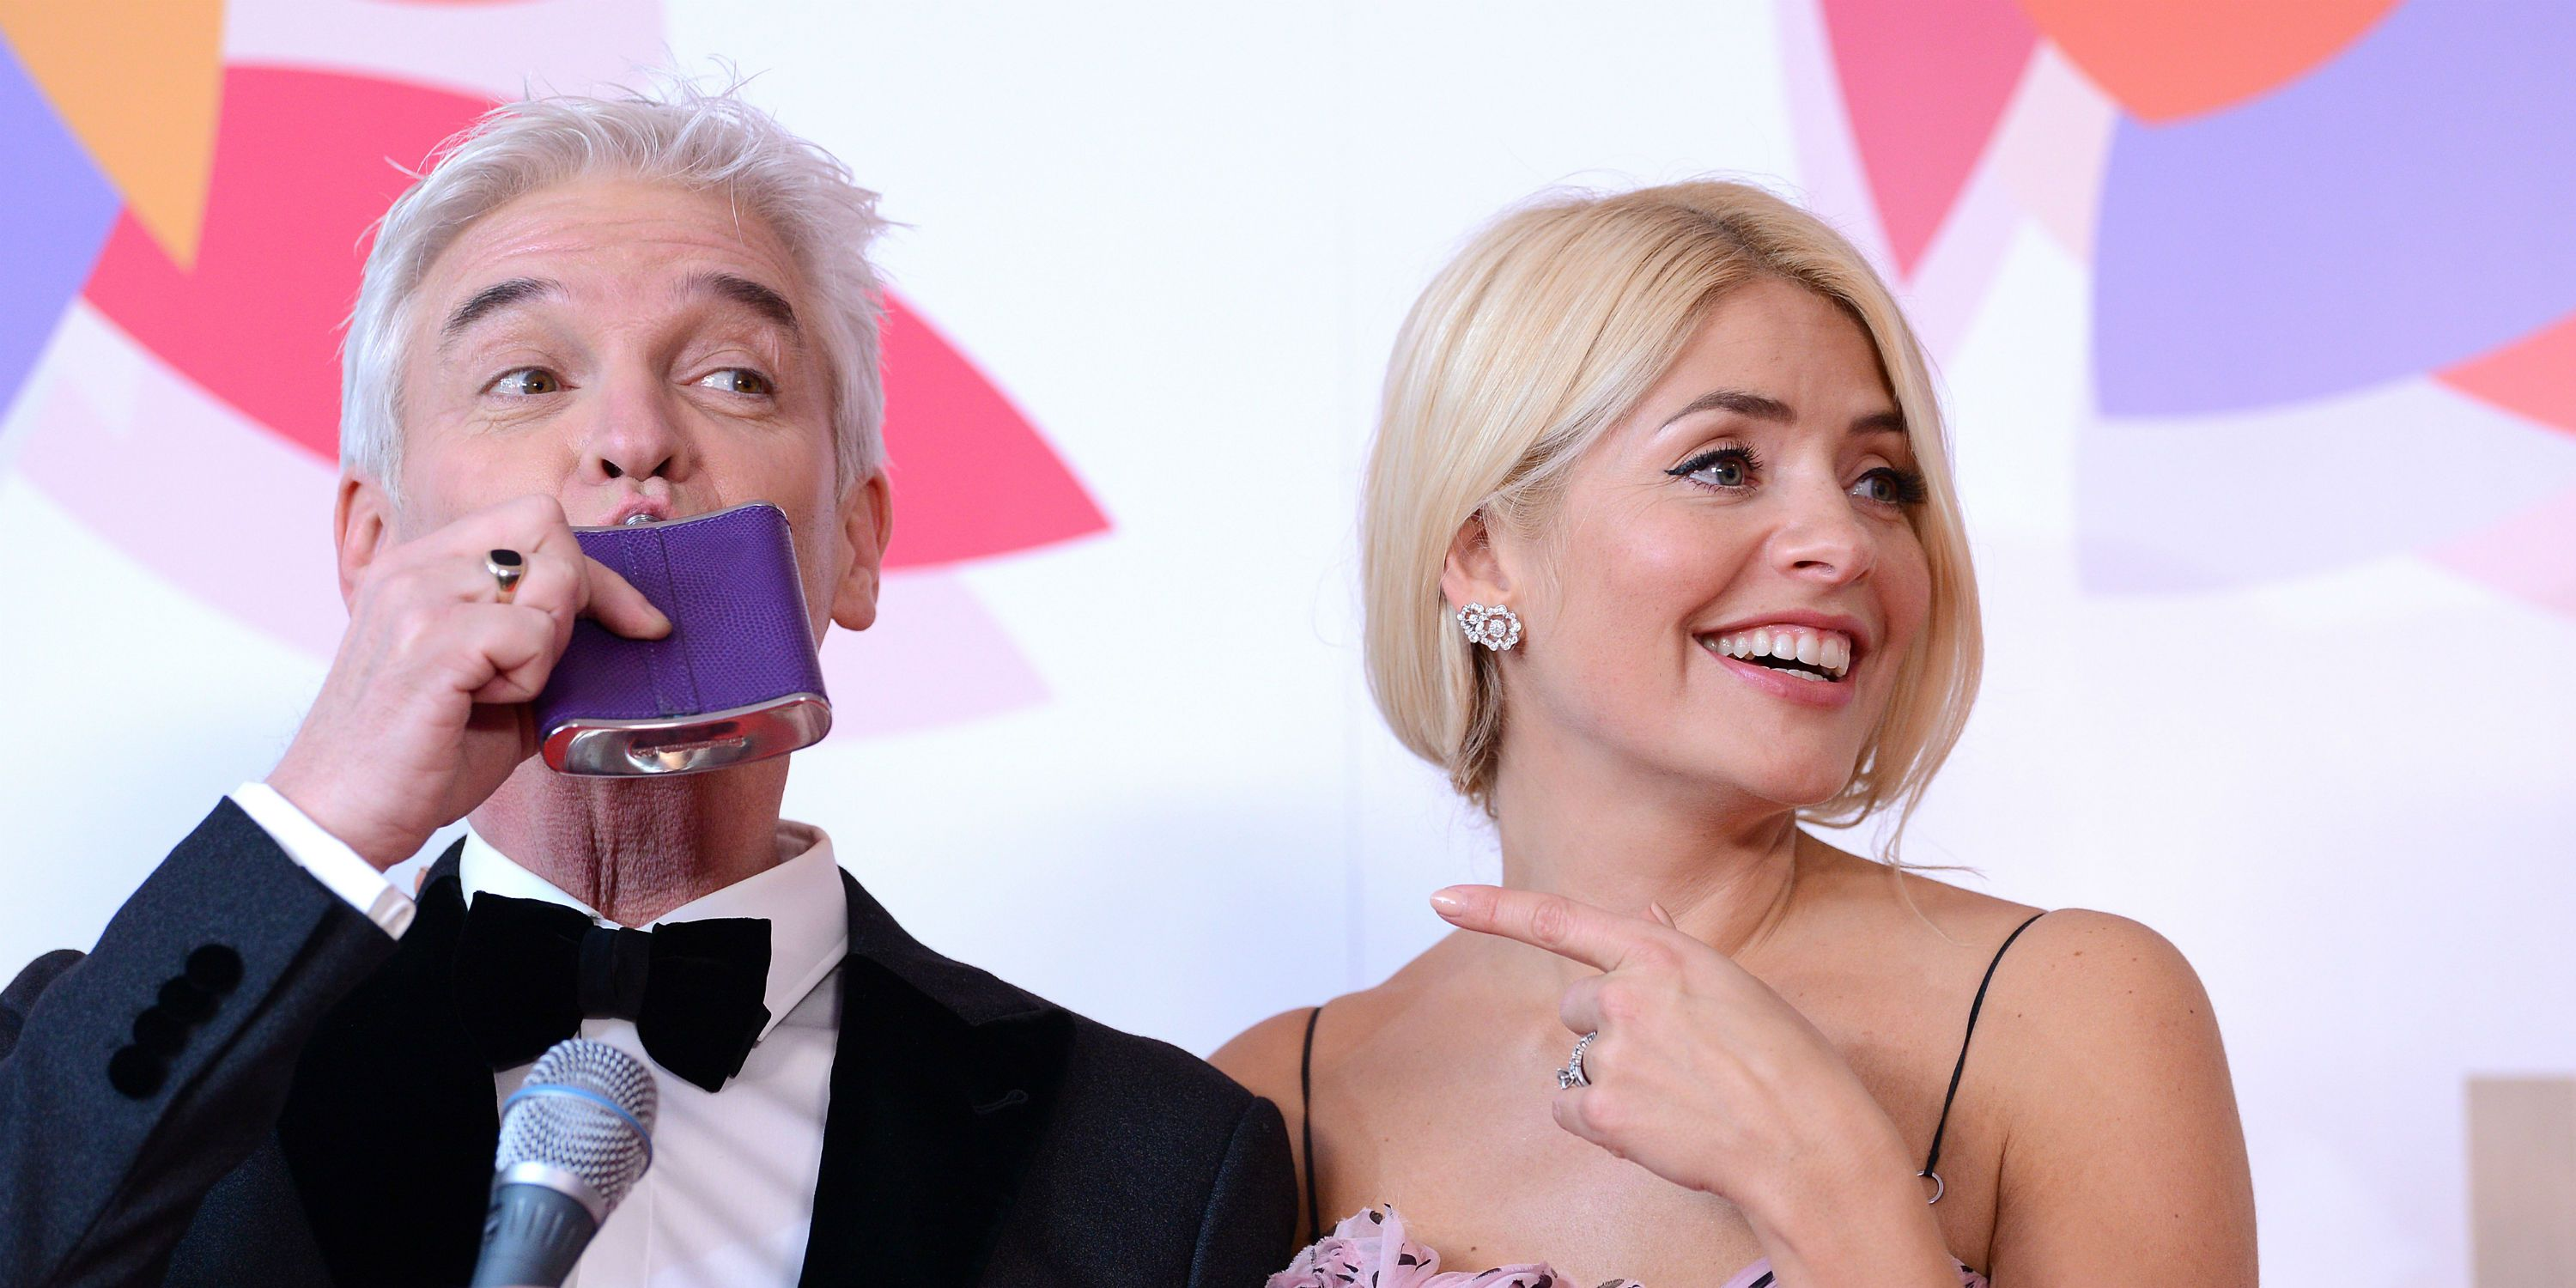 Phillip Schofield and Holly Willoughby at the National Television Awards 2019